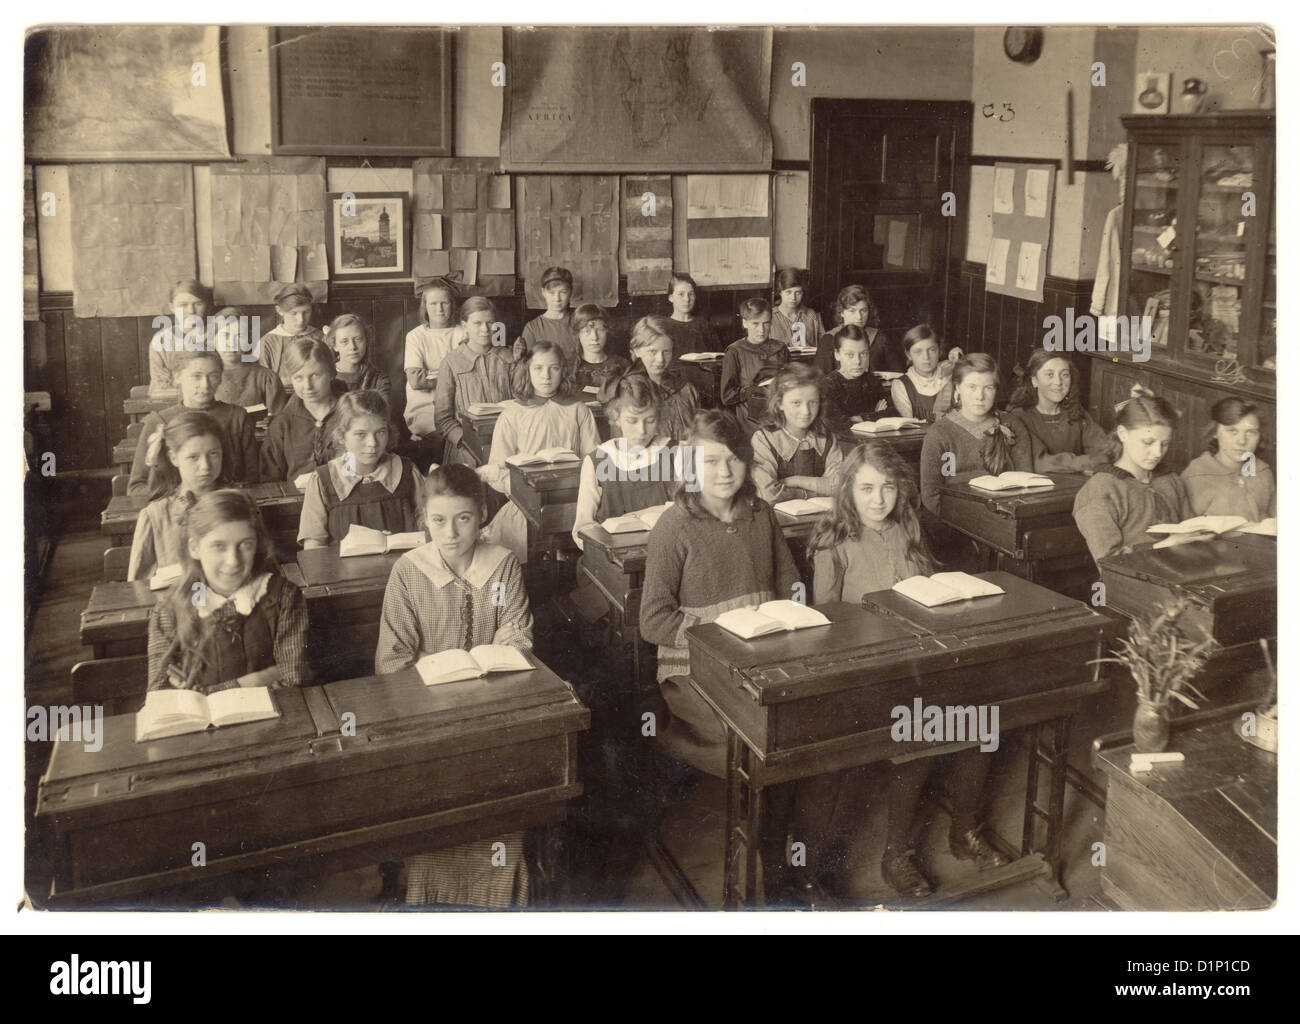 School photograph of junior girls sitting at their desks, with open books in classroom - 1930's, U.K. Stock Photo